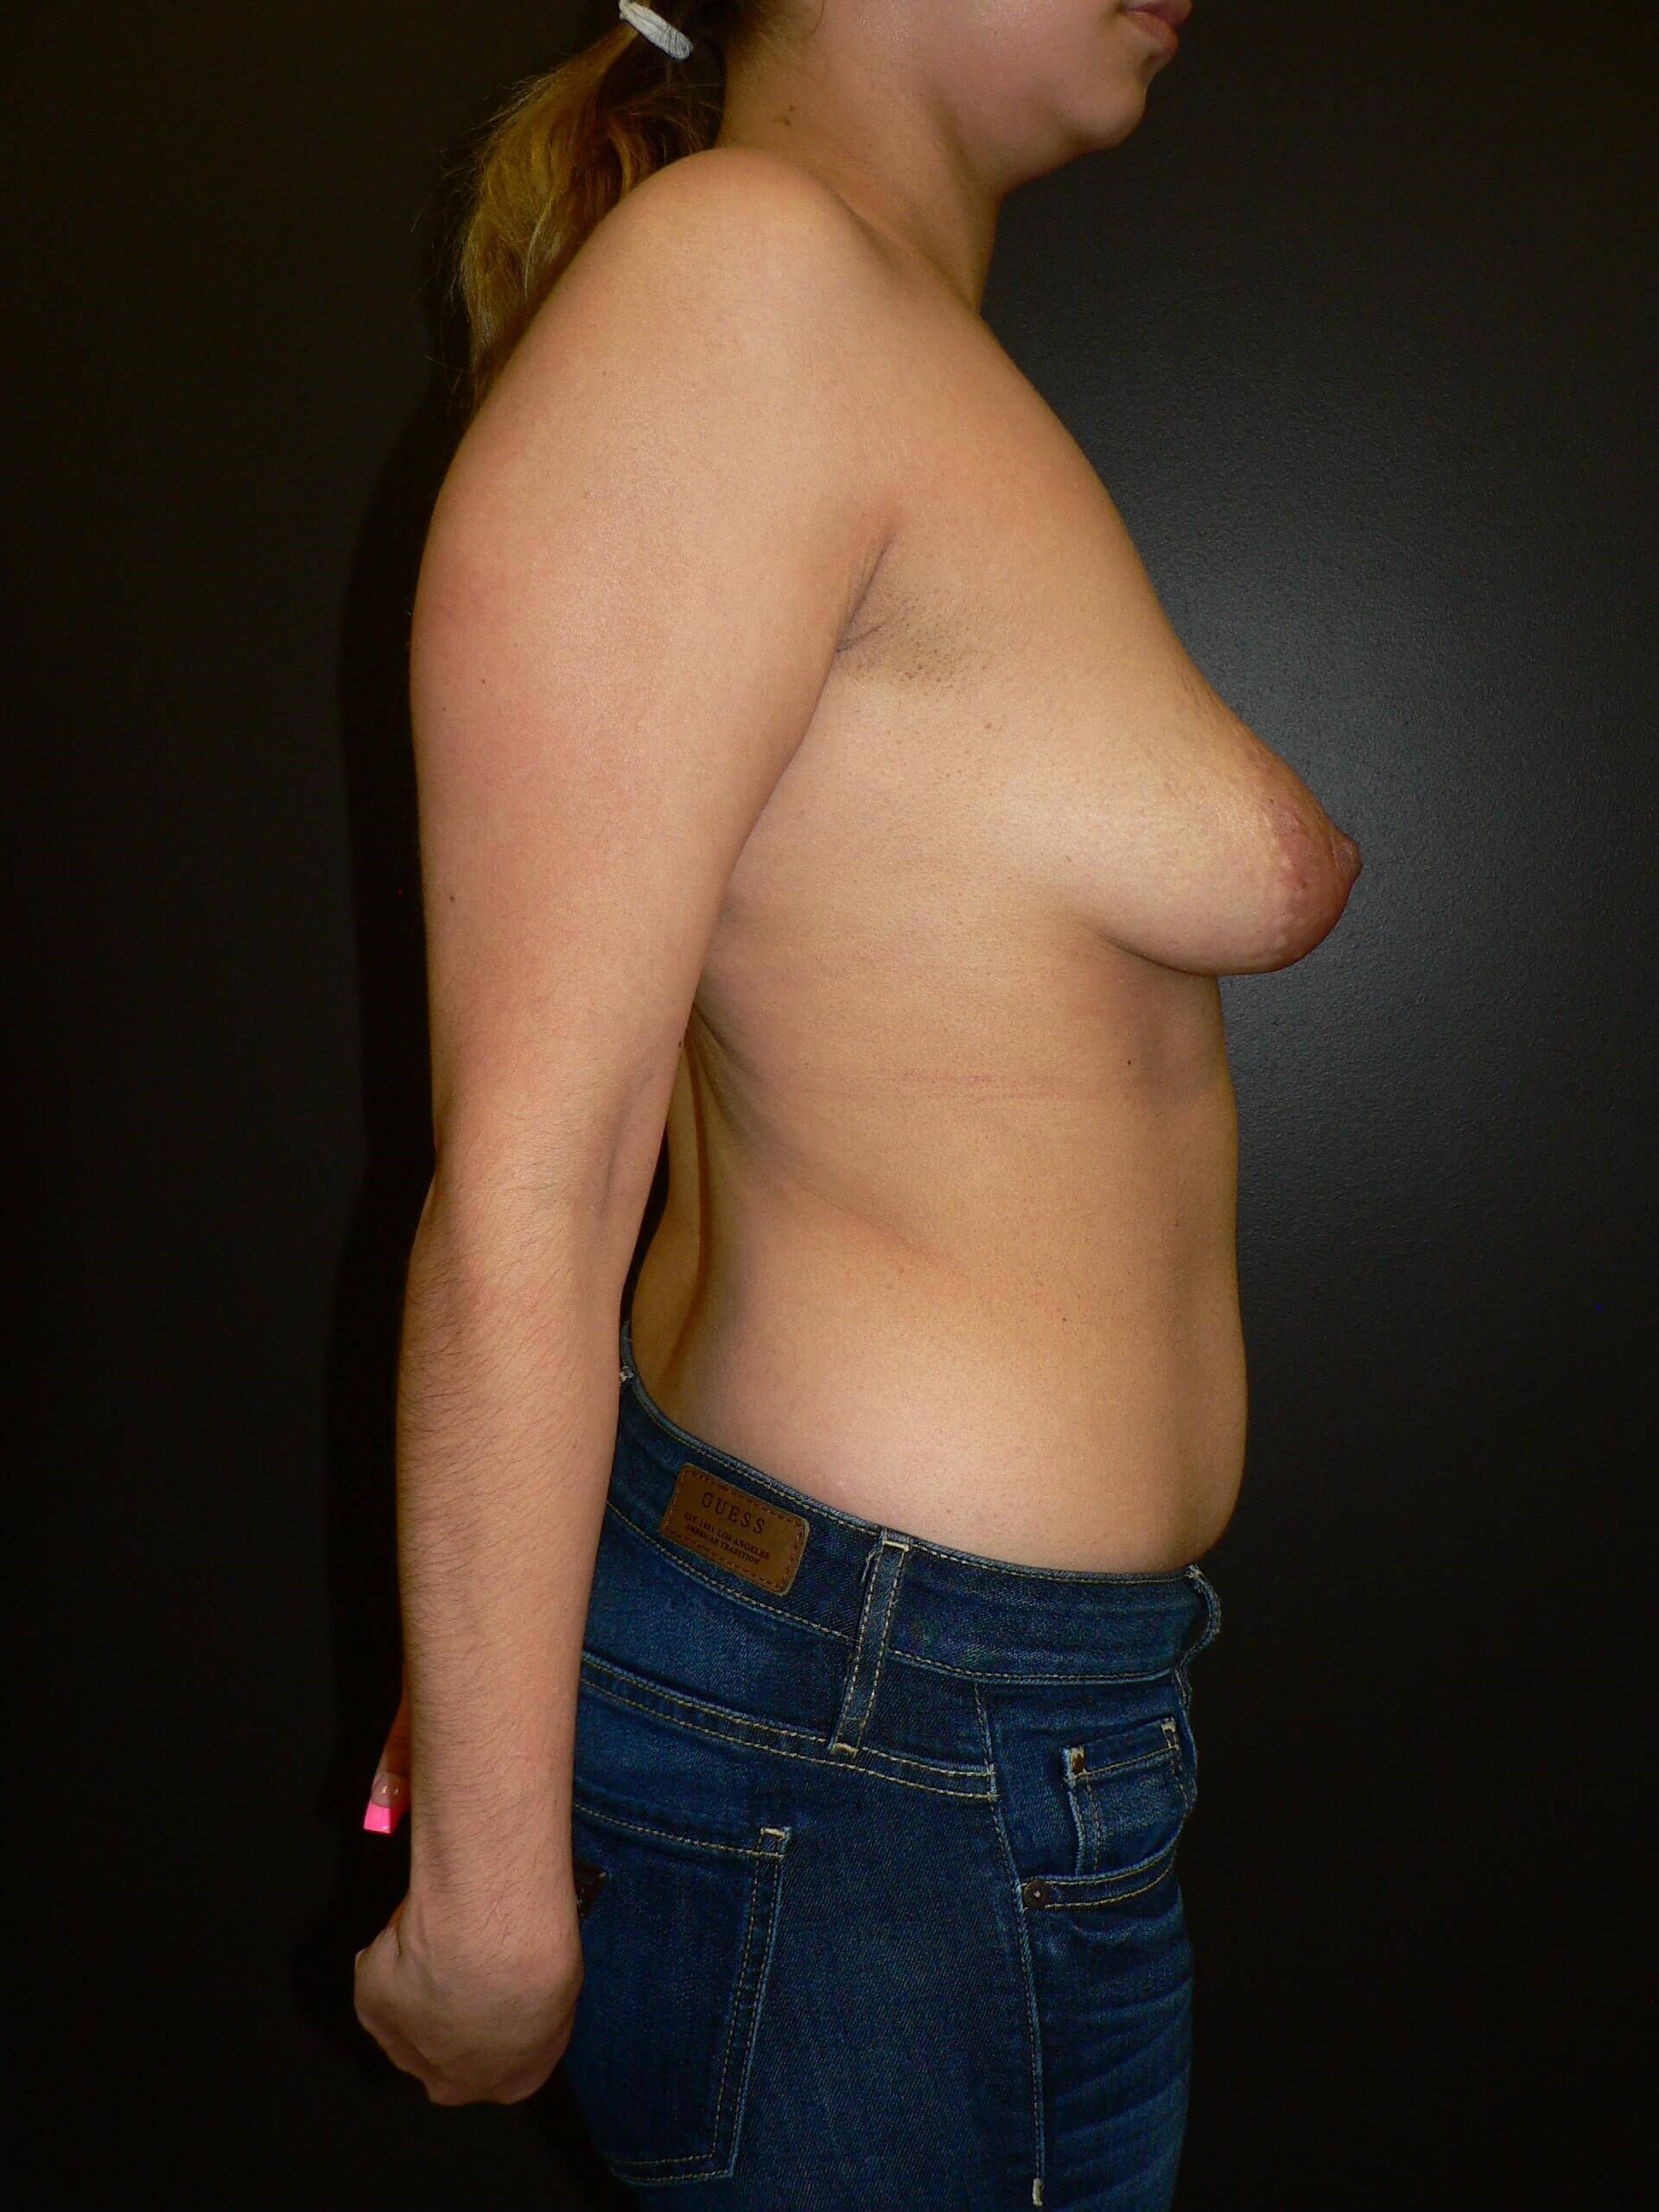 Breast Implants and Lifting Before